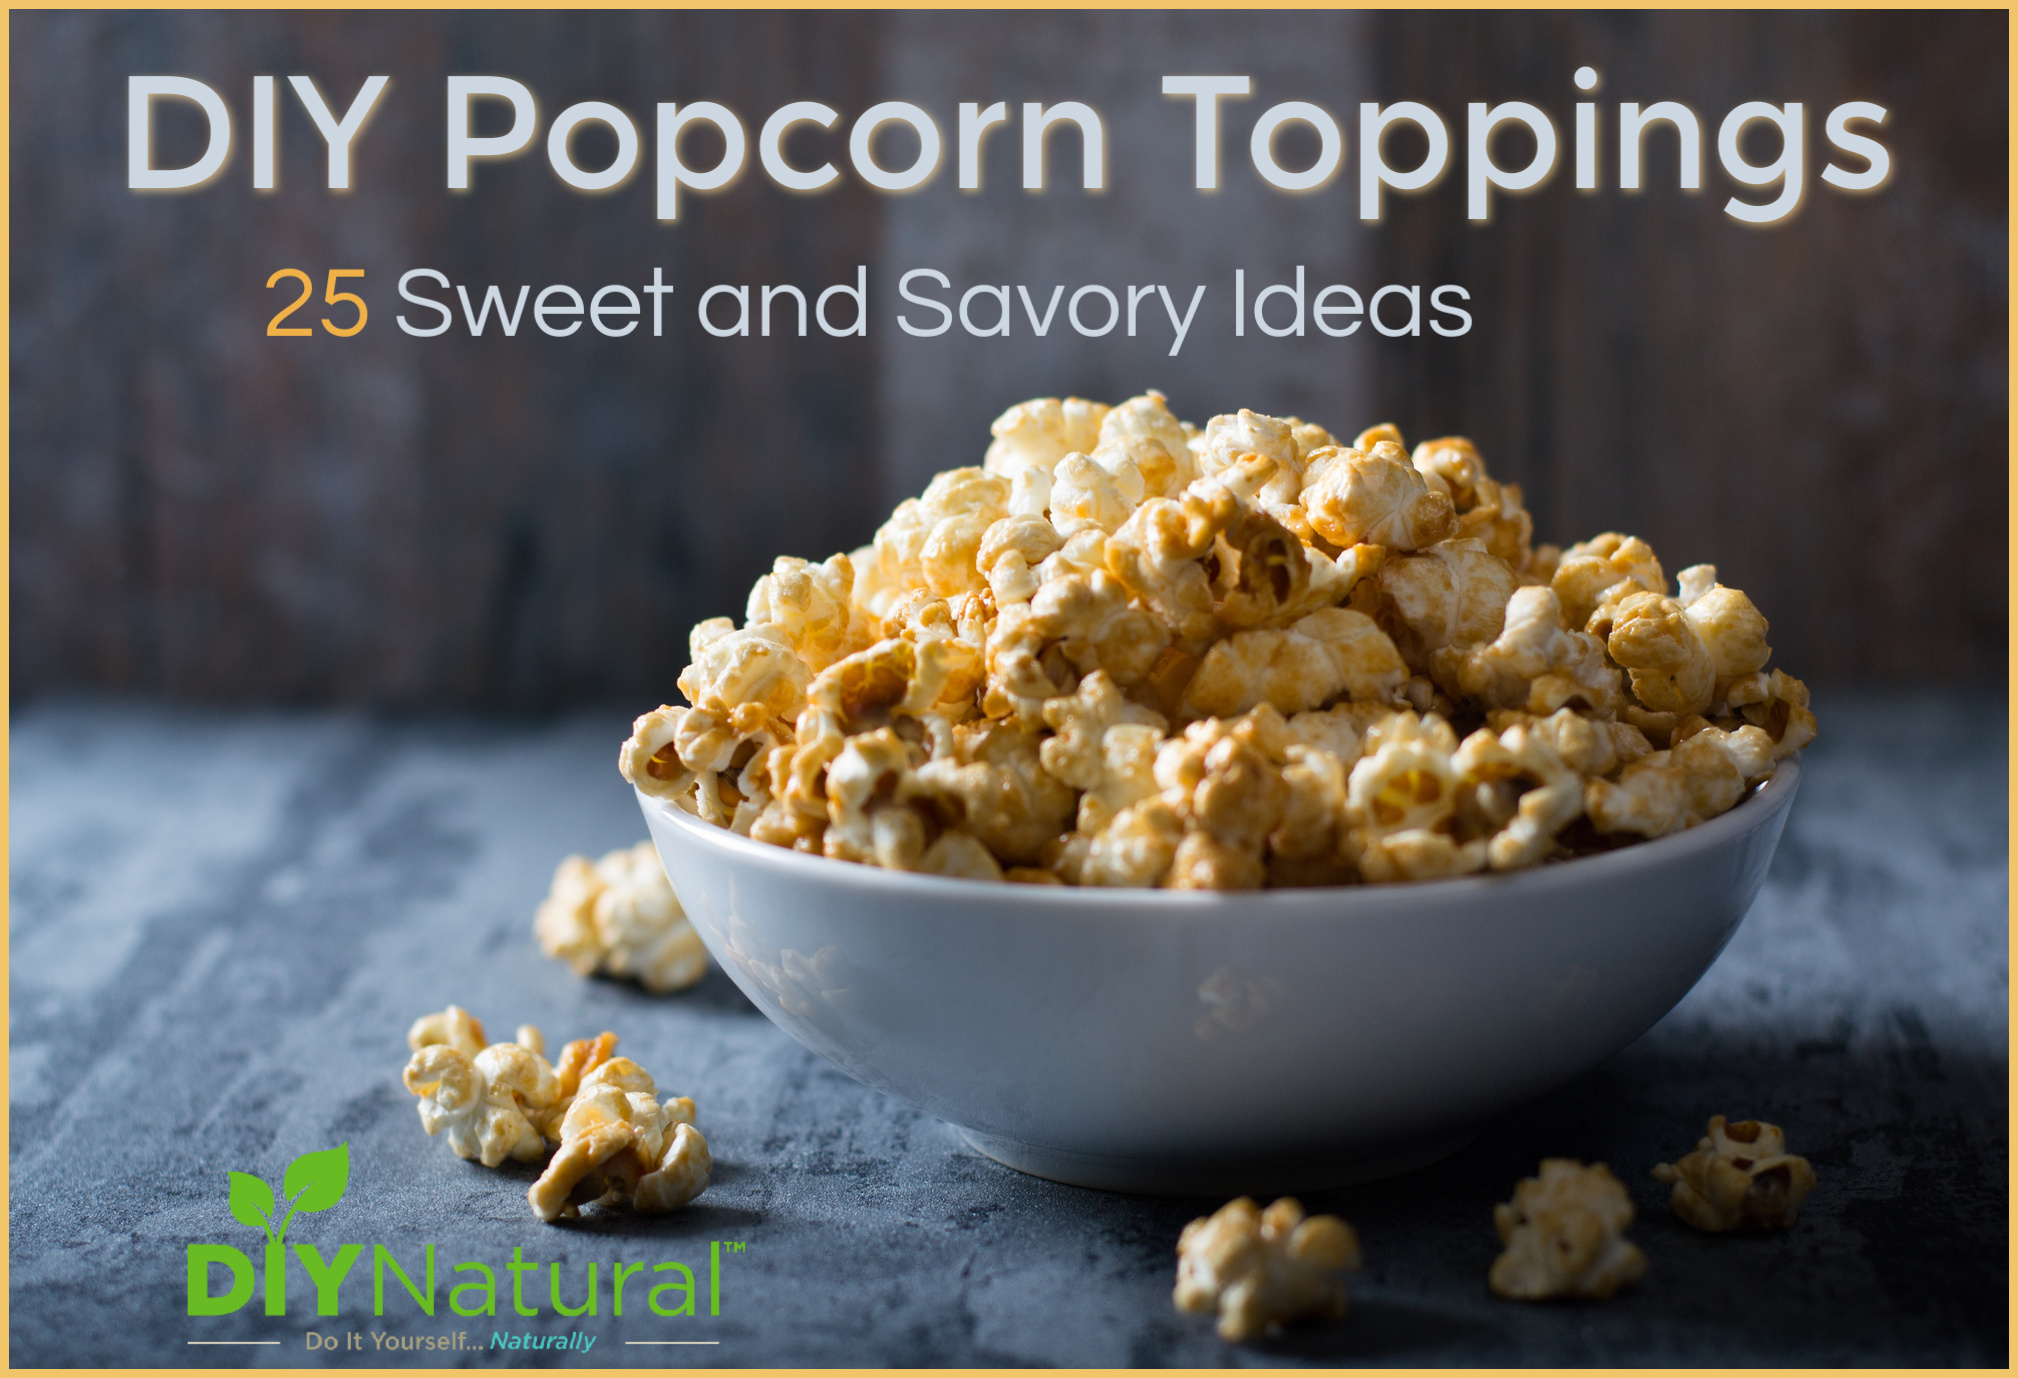 Popcorn Toppings: 25 Ideas for Both